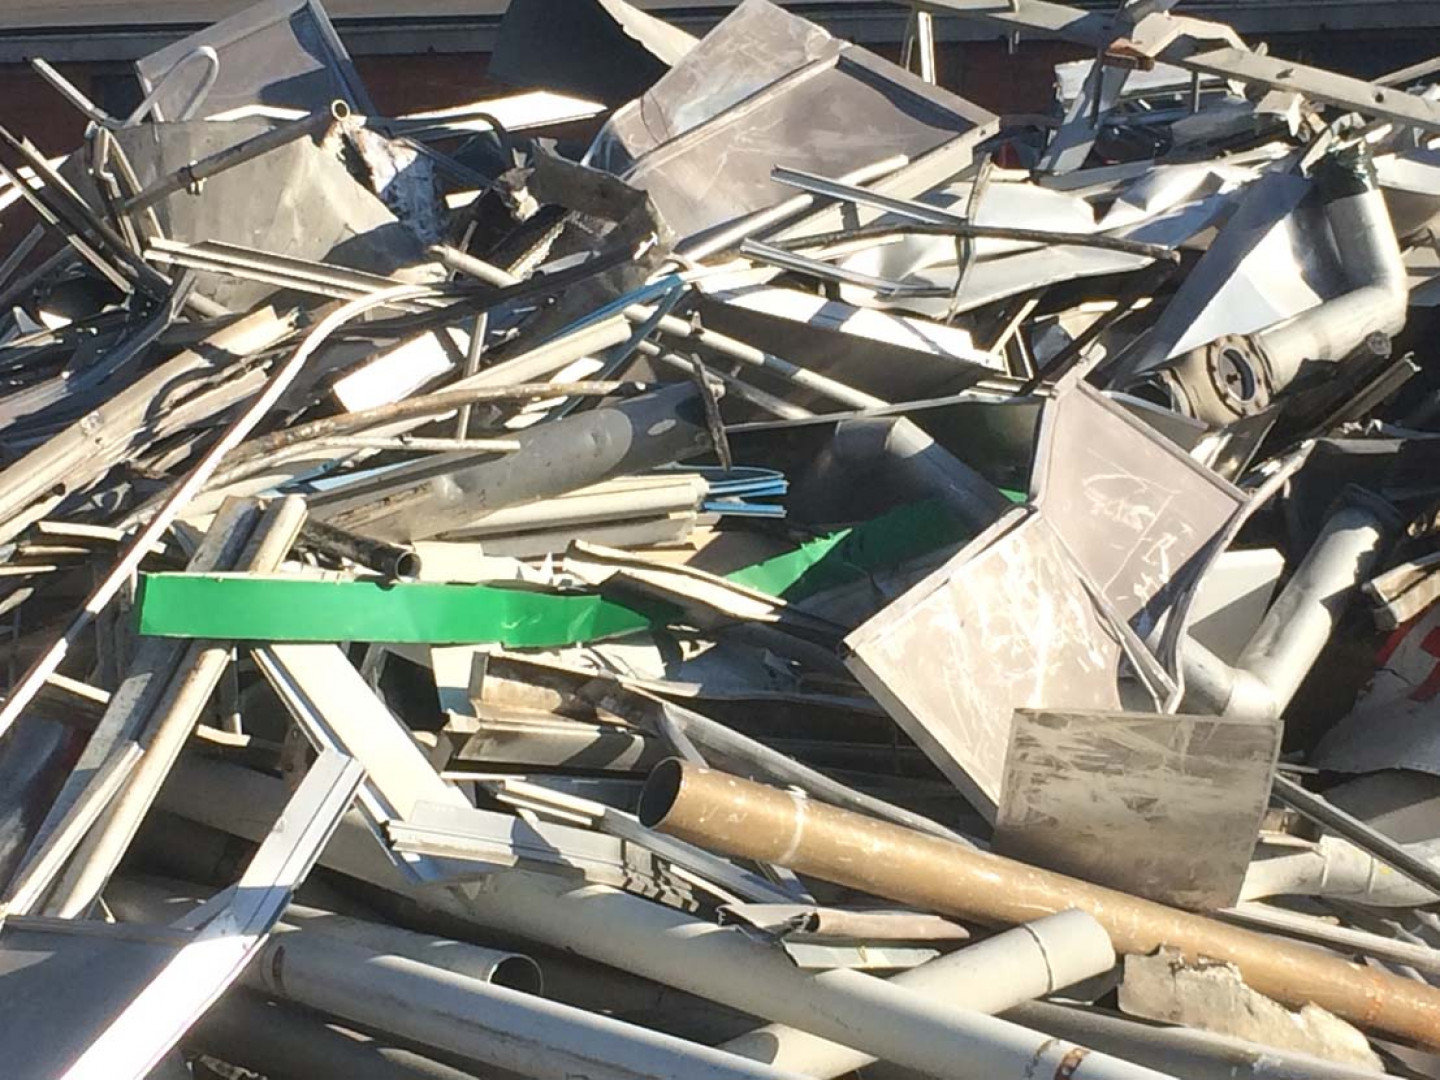 Trockman & Sons has been providing custom scrap recycling service in Evansville since 1892.